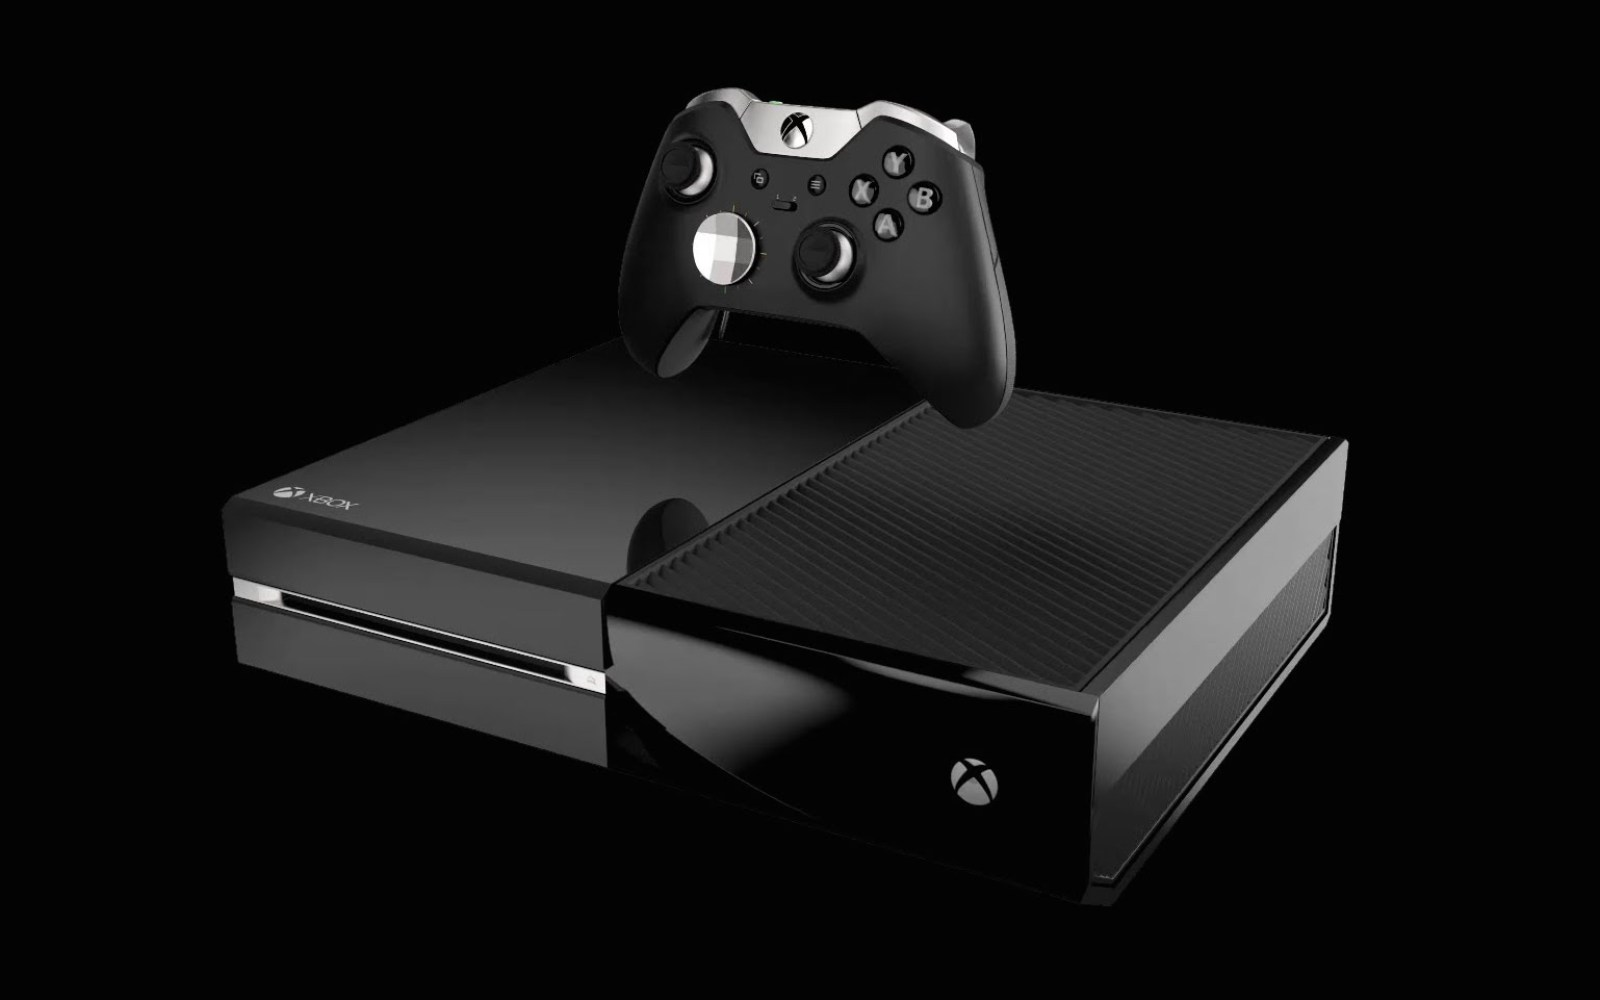 Games/Apps: Xbox One 1TB Elite Bundle $399, Dual PS4 controller Charger $16, SHADOWGUN $2, freebies, more